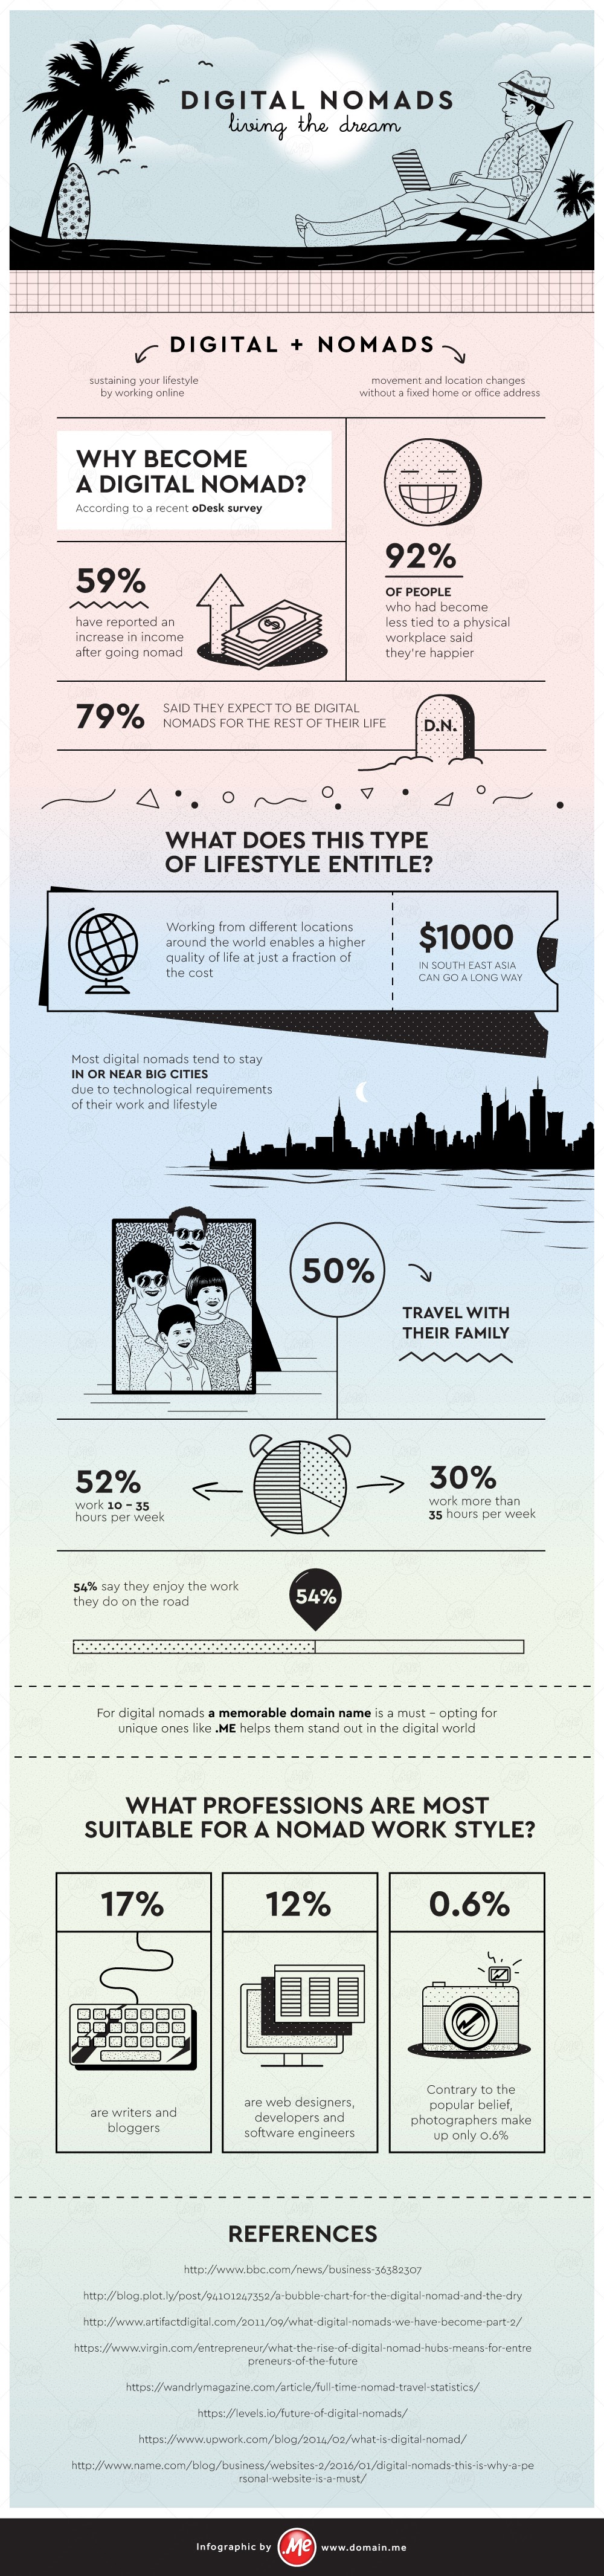 Digital Nomads – Living the Dream - #infographic